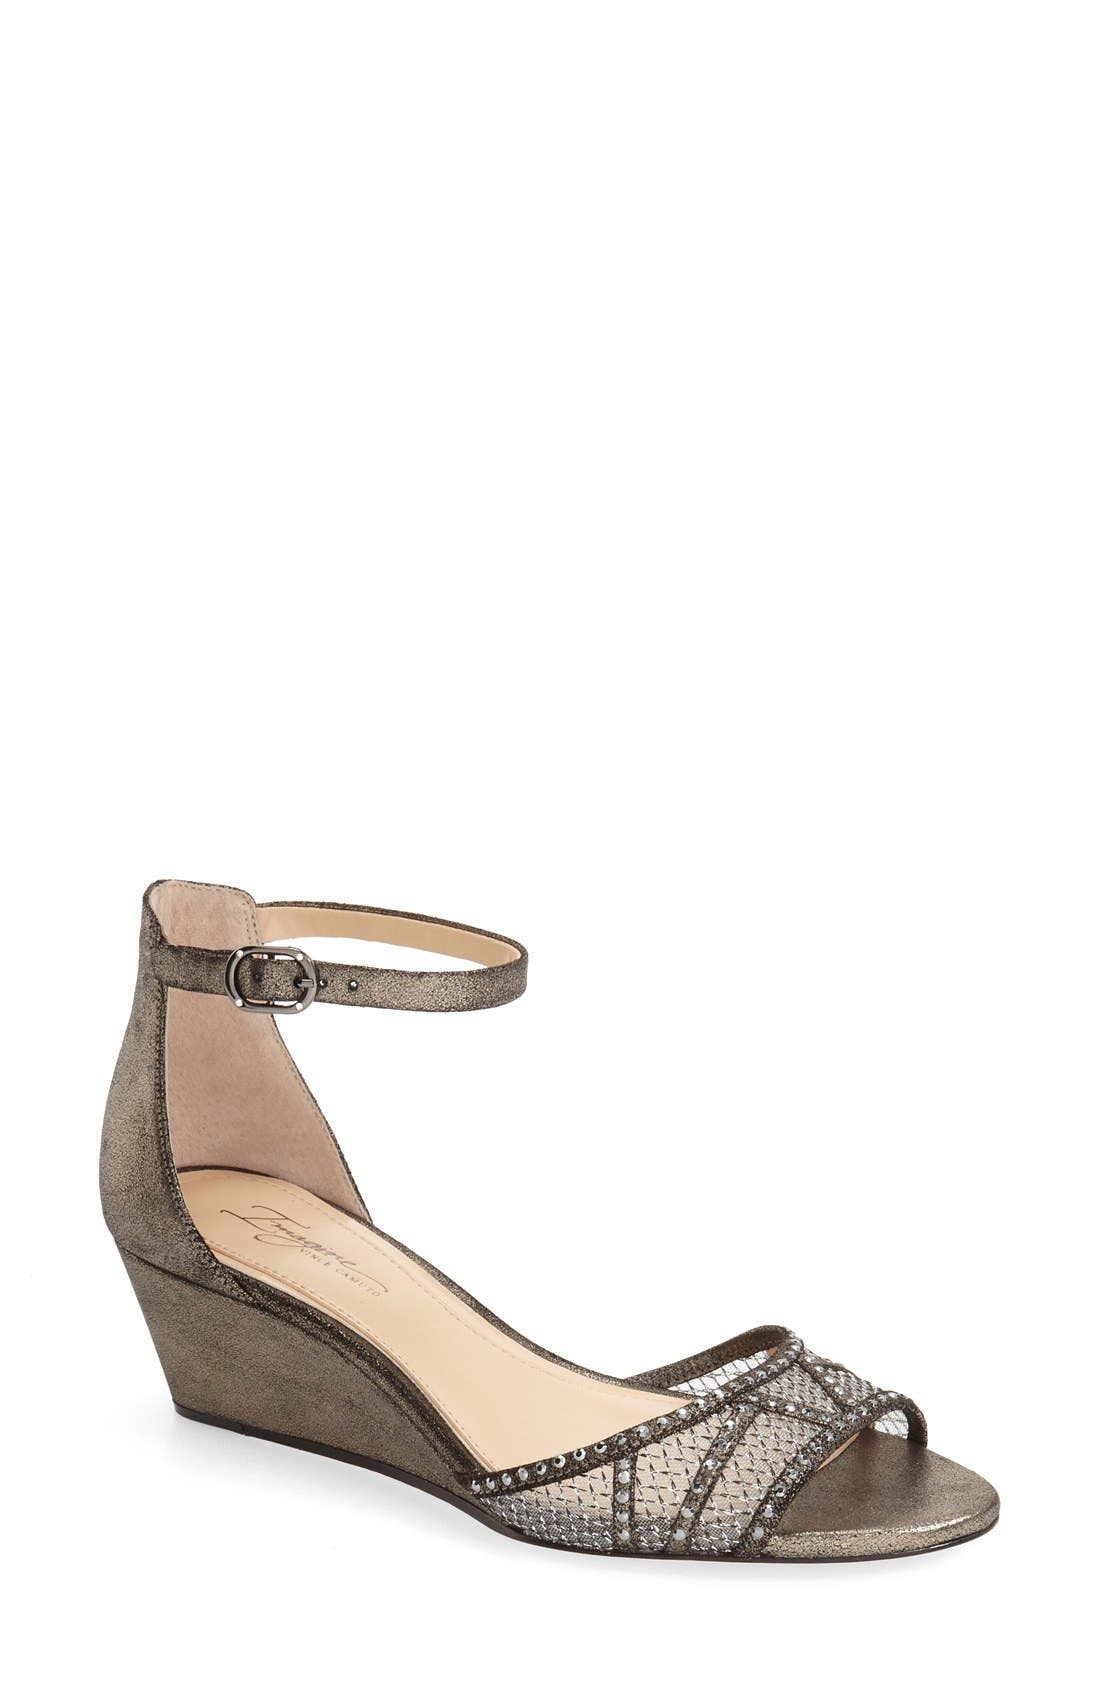 'Joan' Studded Wedge Sandal,                         Main,                         color, Anthracite Suede